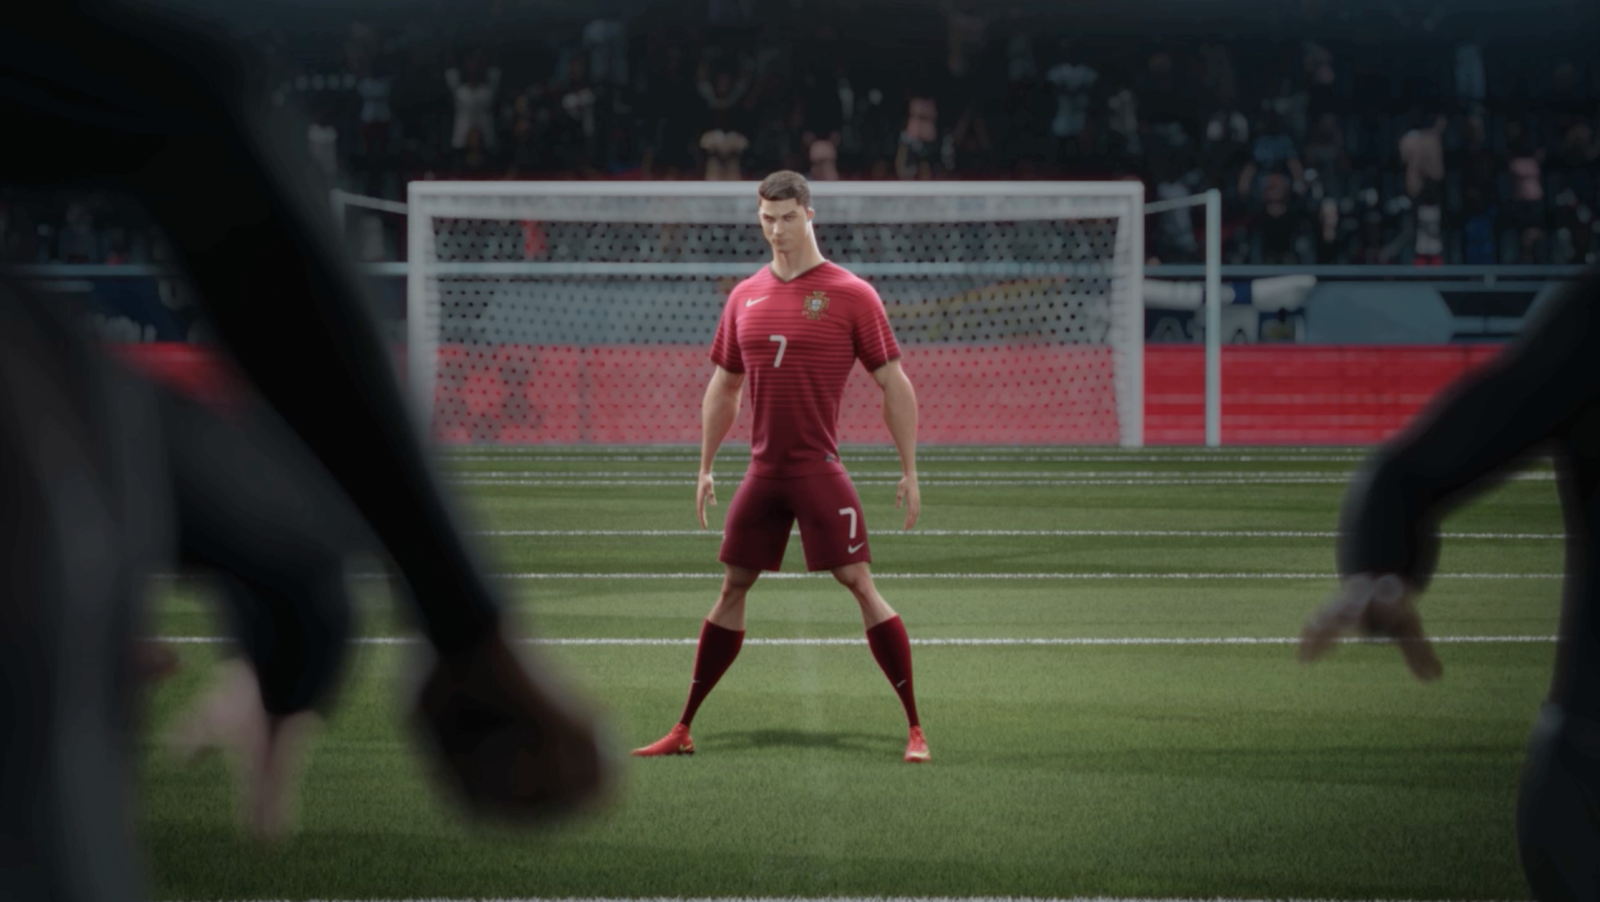 Nike Football To Release The Last Game Animated Film On